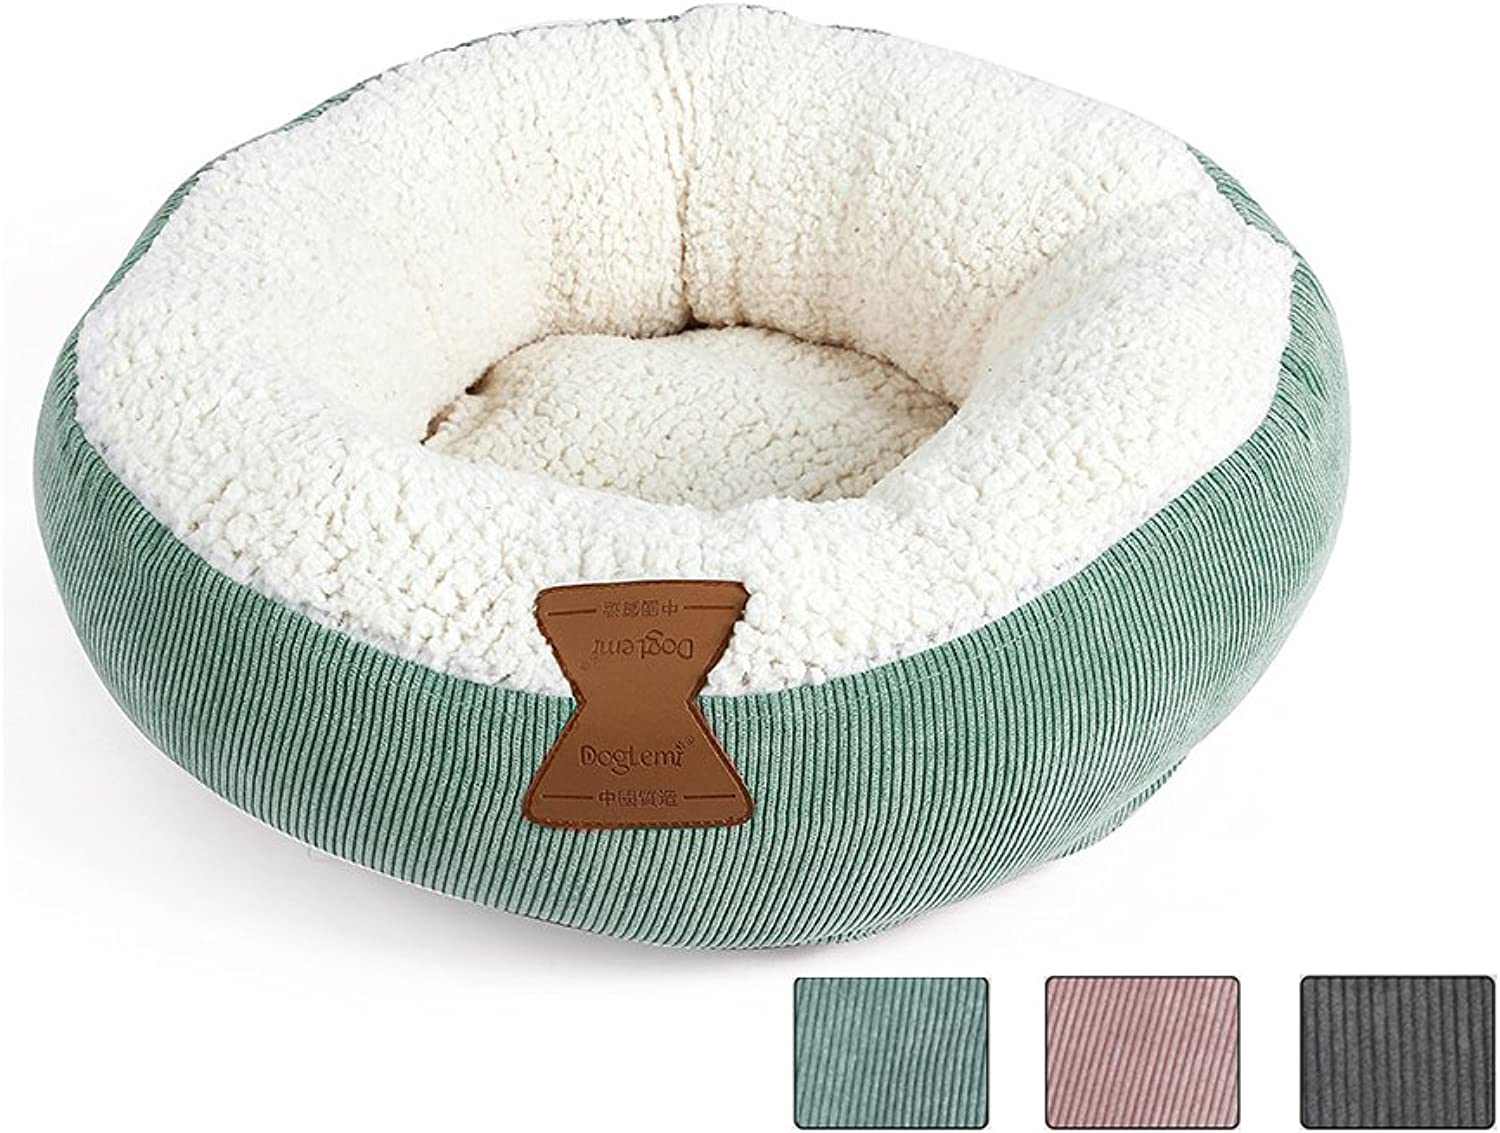 HongYH Winter Cat Bed Round Donut Fleece Pet Cushion Oval Plush Soft Warm Washable Doggy House with Thick Cotton